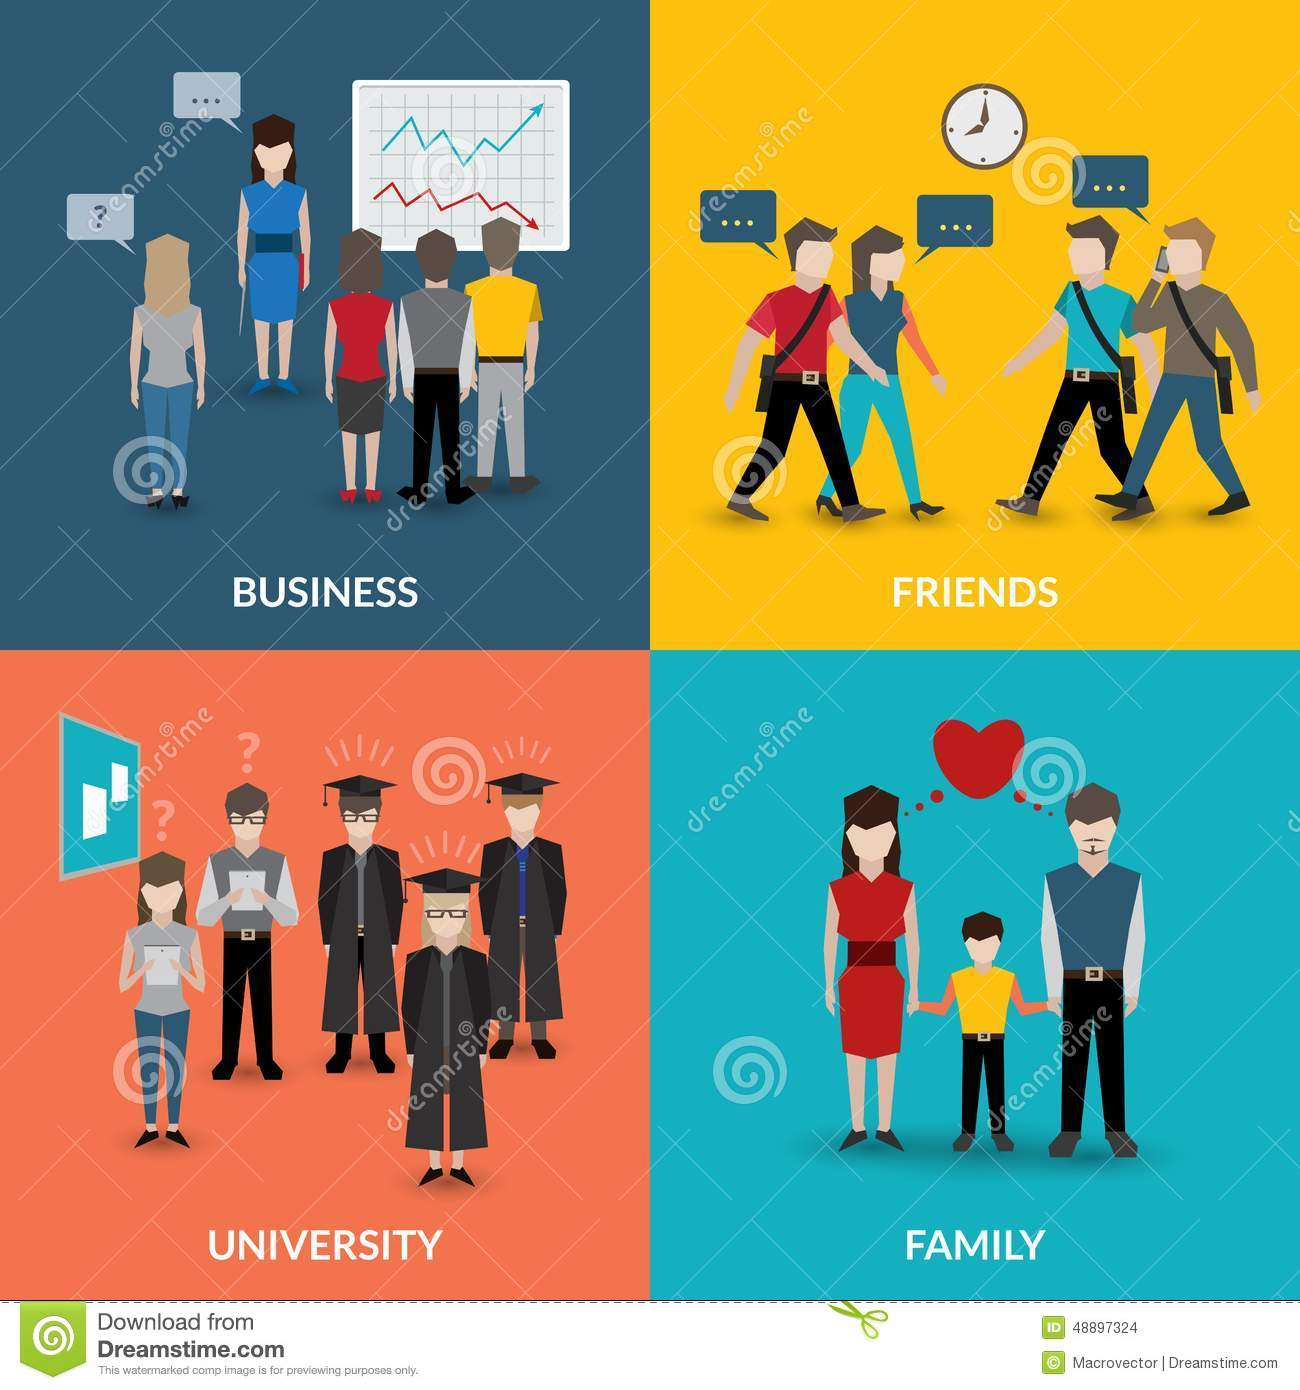 university and work situation Marquette university career services center interviewing skills think about previous work situations and design a picture of an ideal company for you as a.